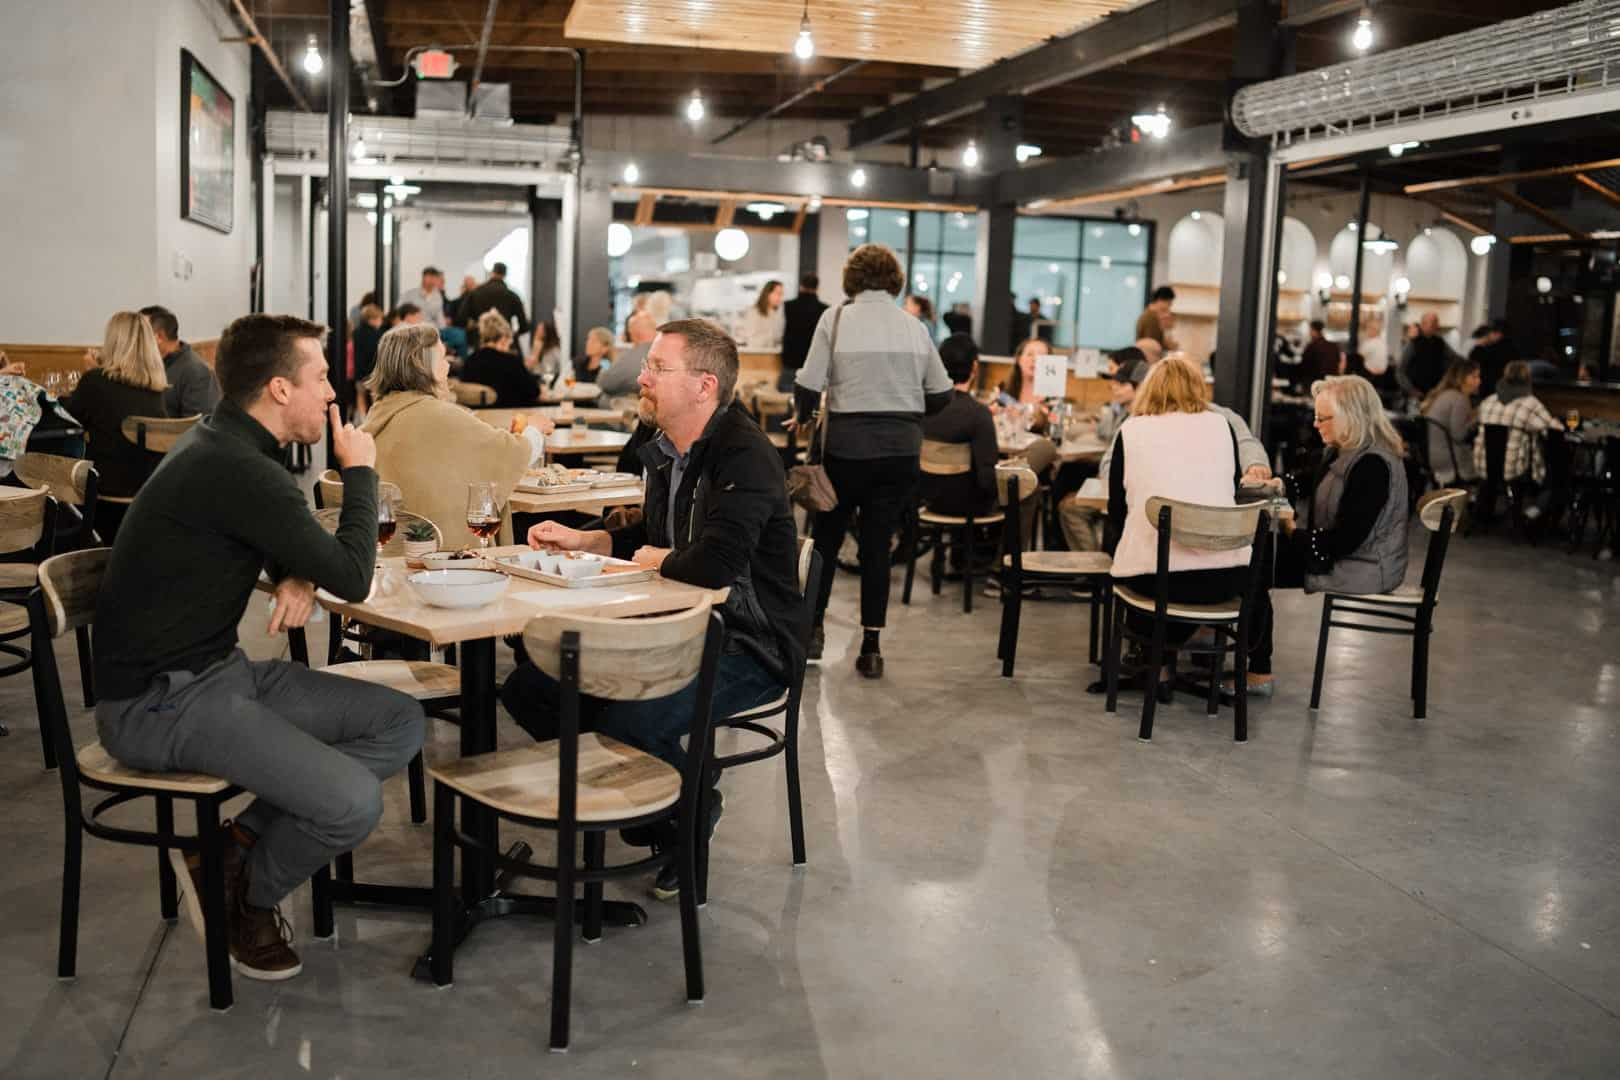 interior of the commons food hall with people sitting at tables